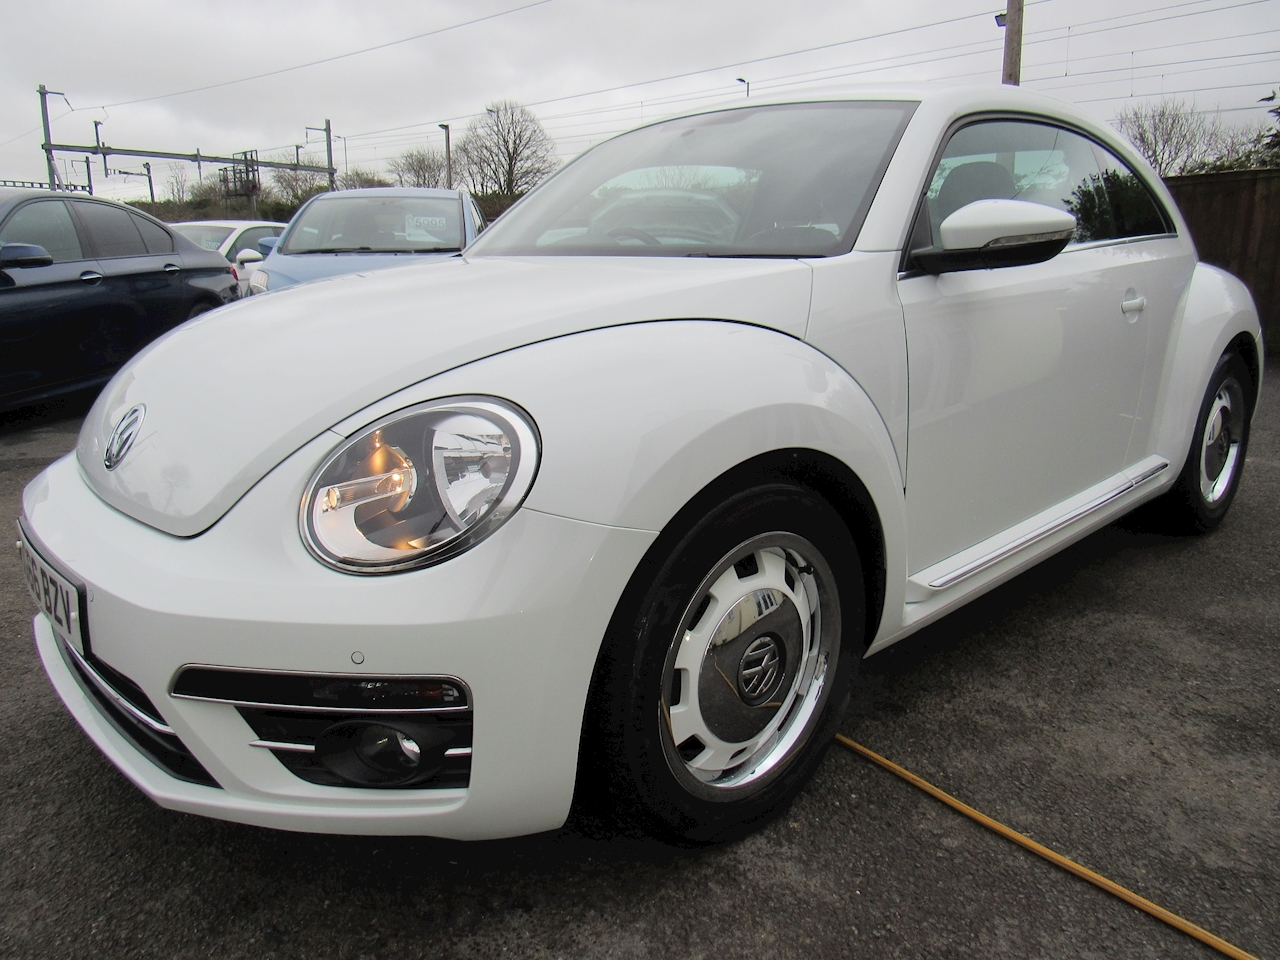 Volkswagen Beetle Design Tsi Bluemotion Technology Hatchback 1.4 Manual Petrol